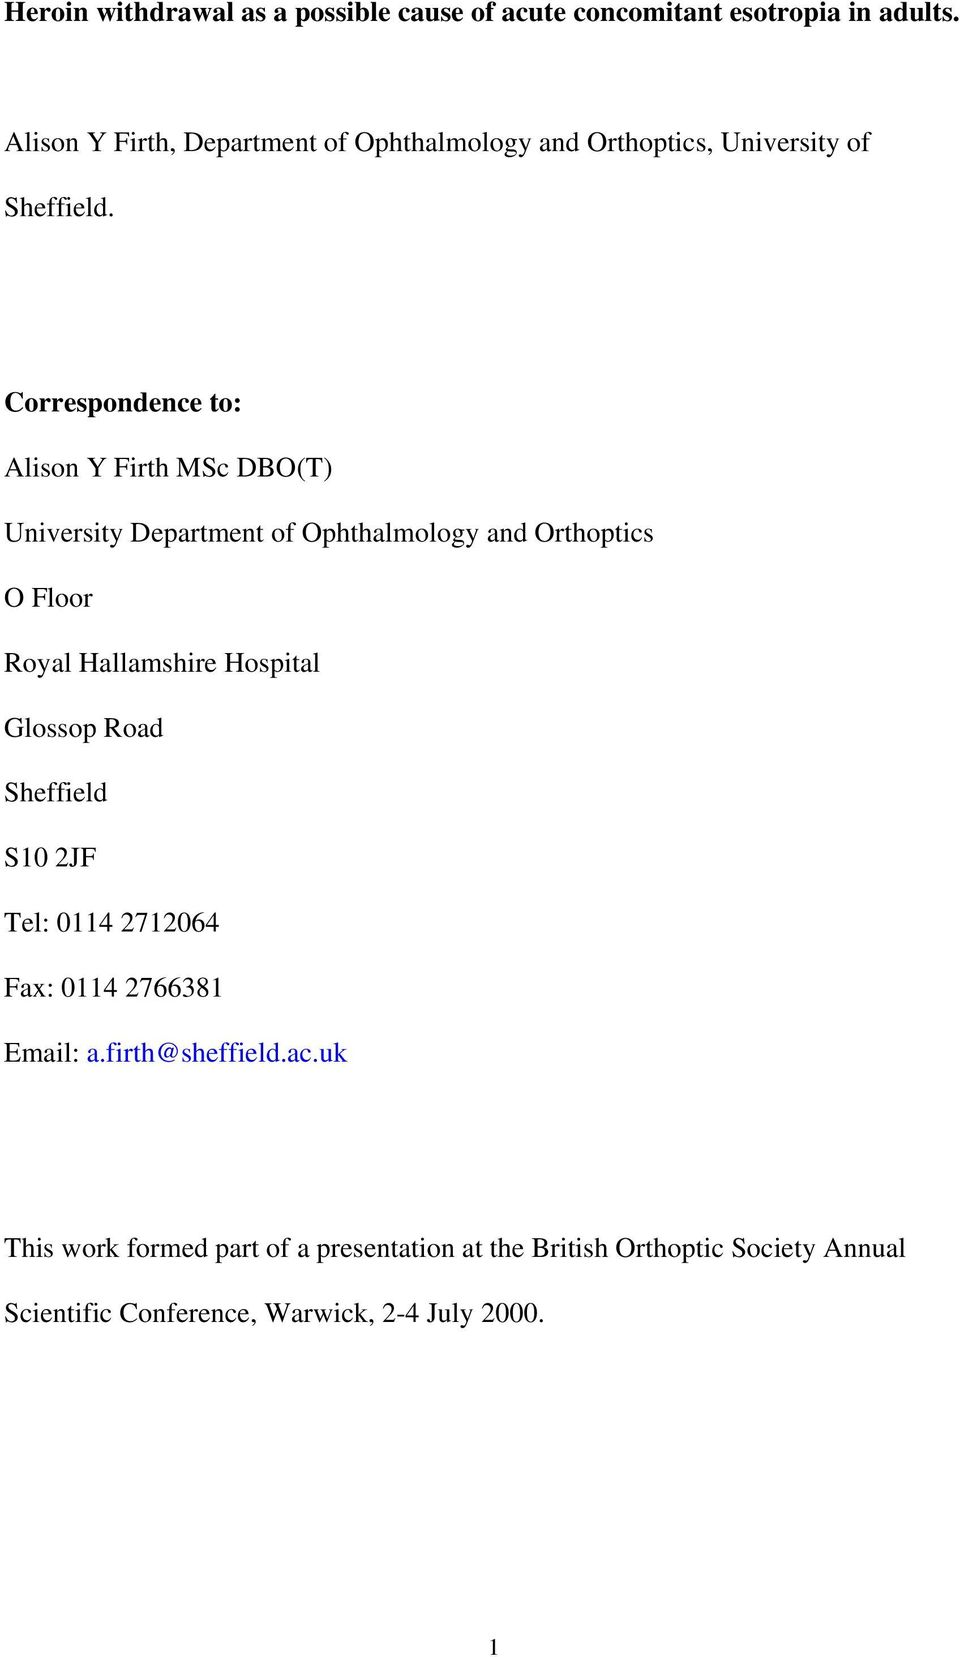 Correspondence to: Alison Y Firth MSc DBO(T) University Department of Ophthalmology and Orthoptics O Floor Royal Hallamshire